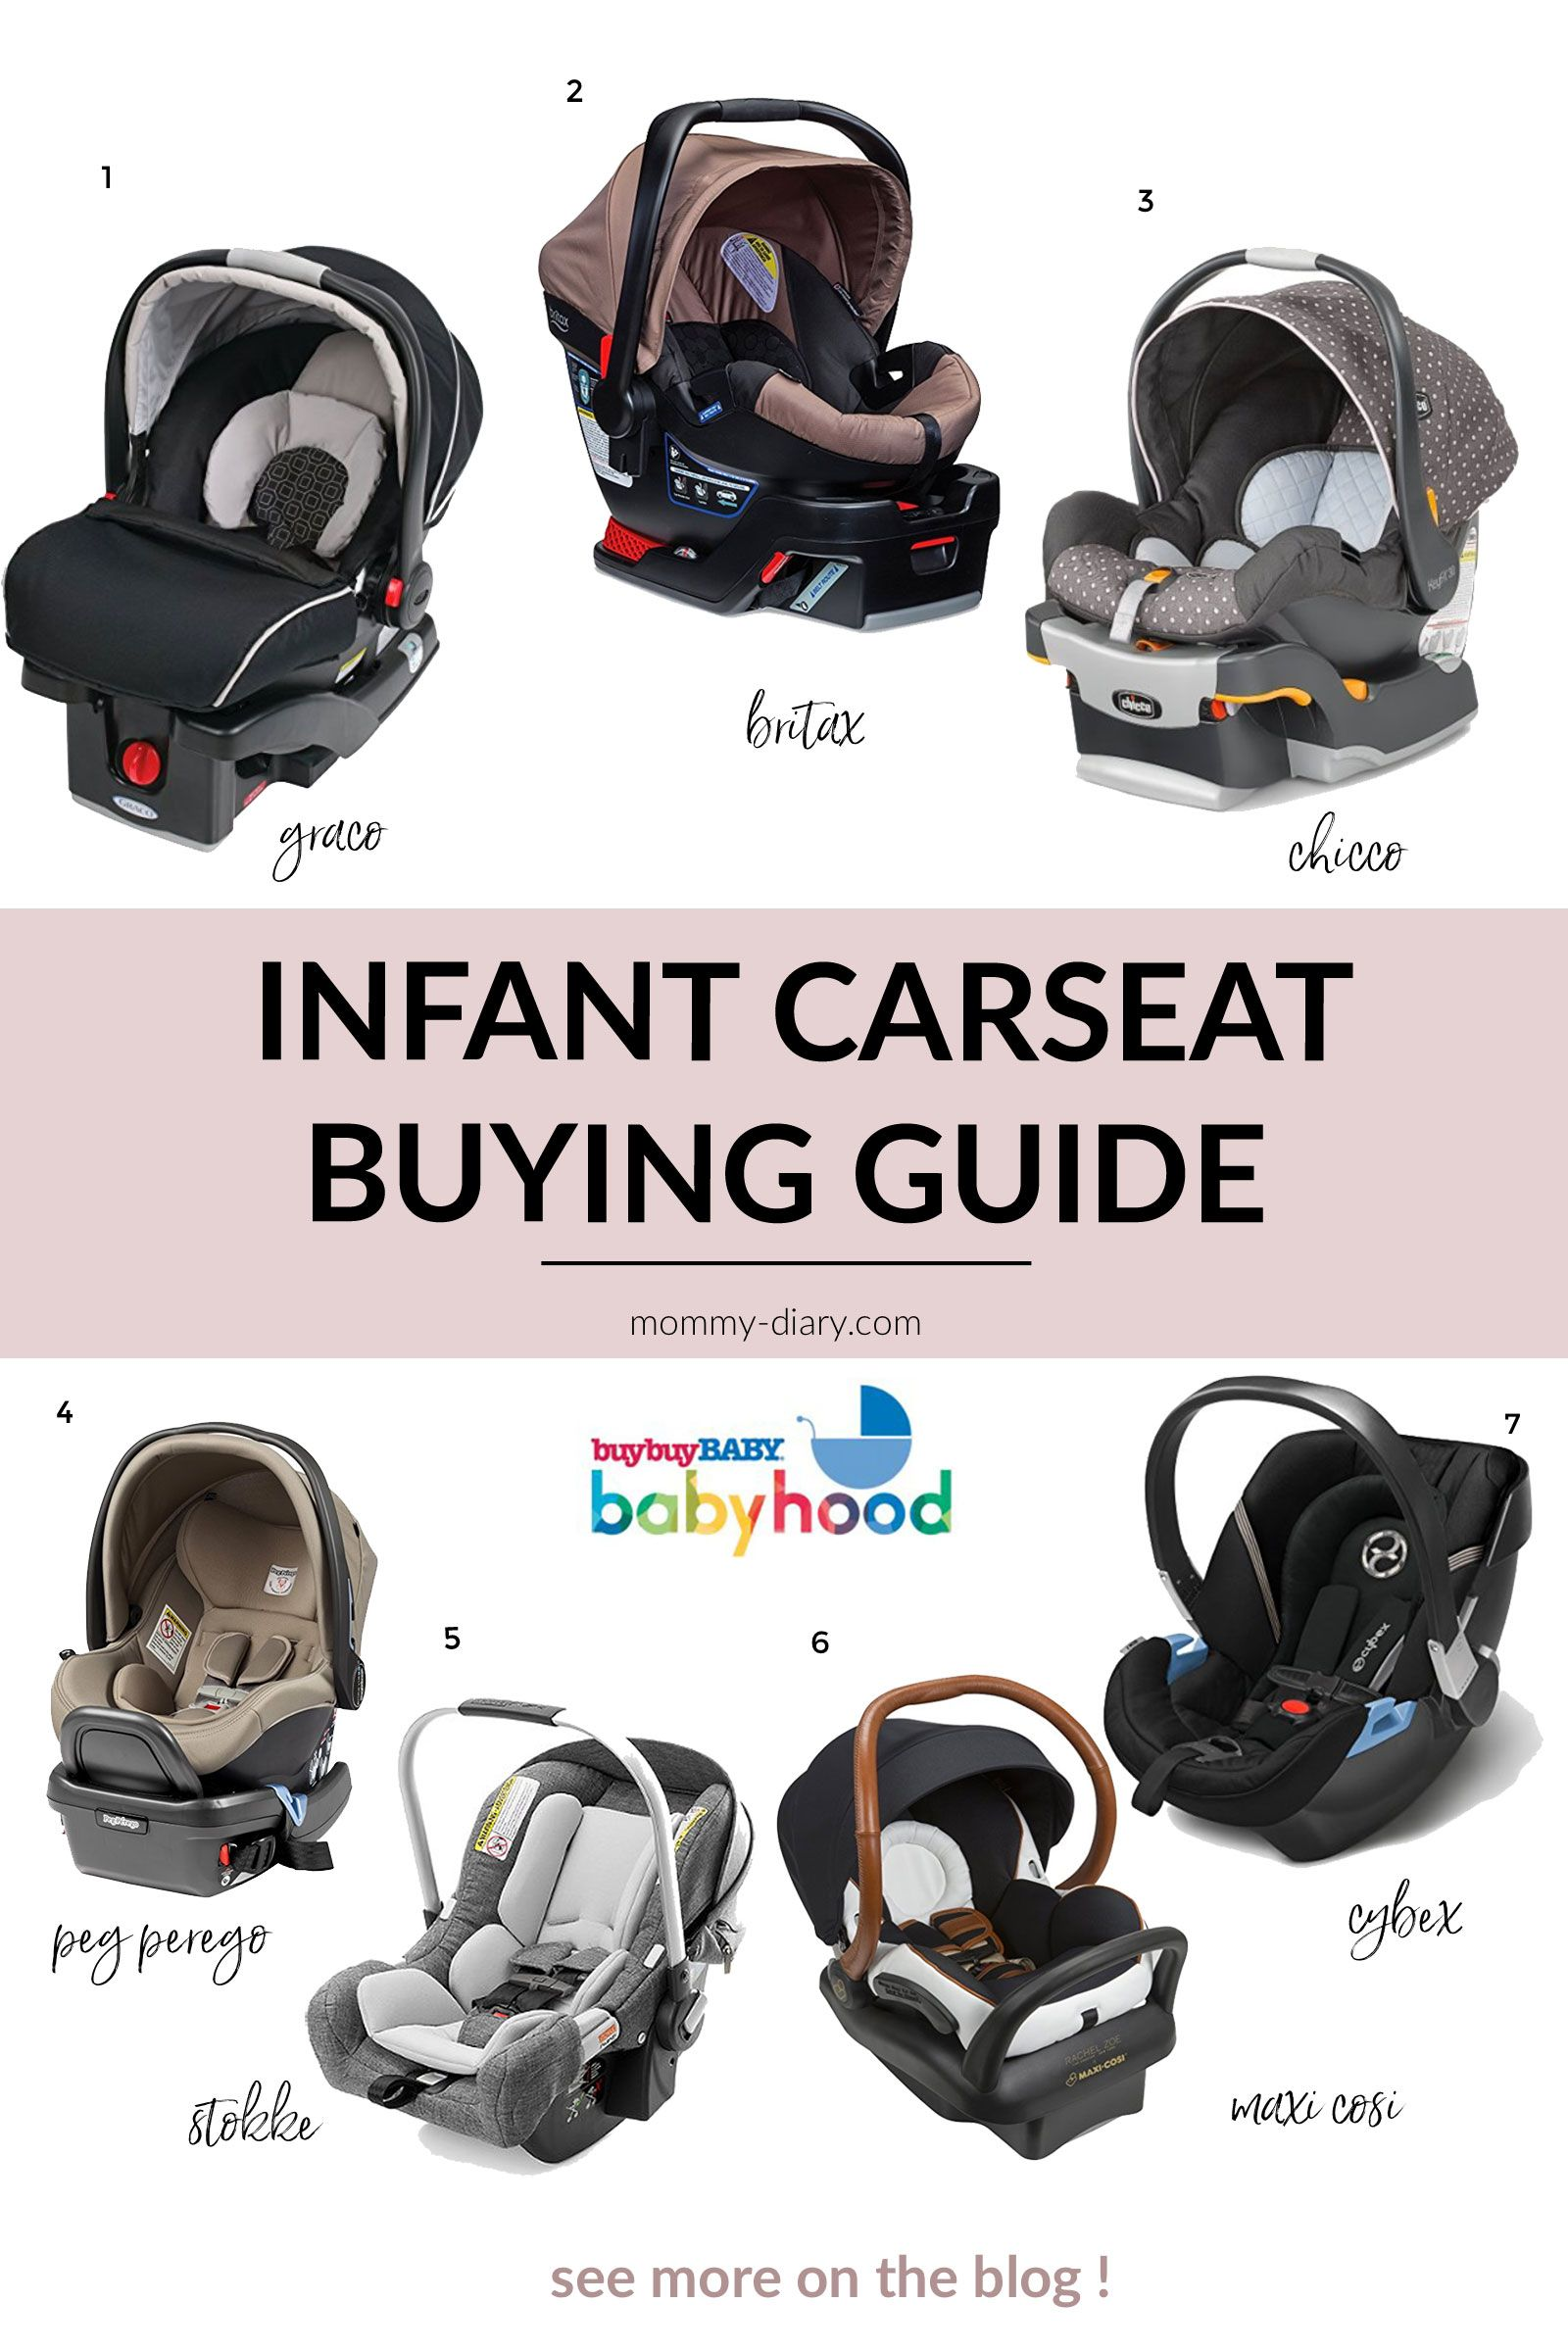 The Following Post Is Sponsored By Buybuy BABY As A Mother Of Three Kids Ive Gone Through Countless Car Seats From Lower End Lines To Higher